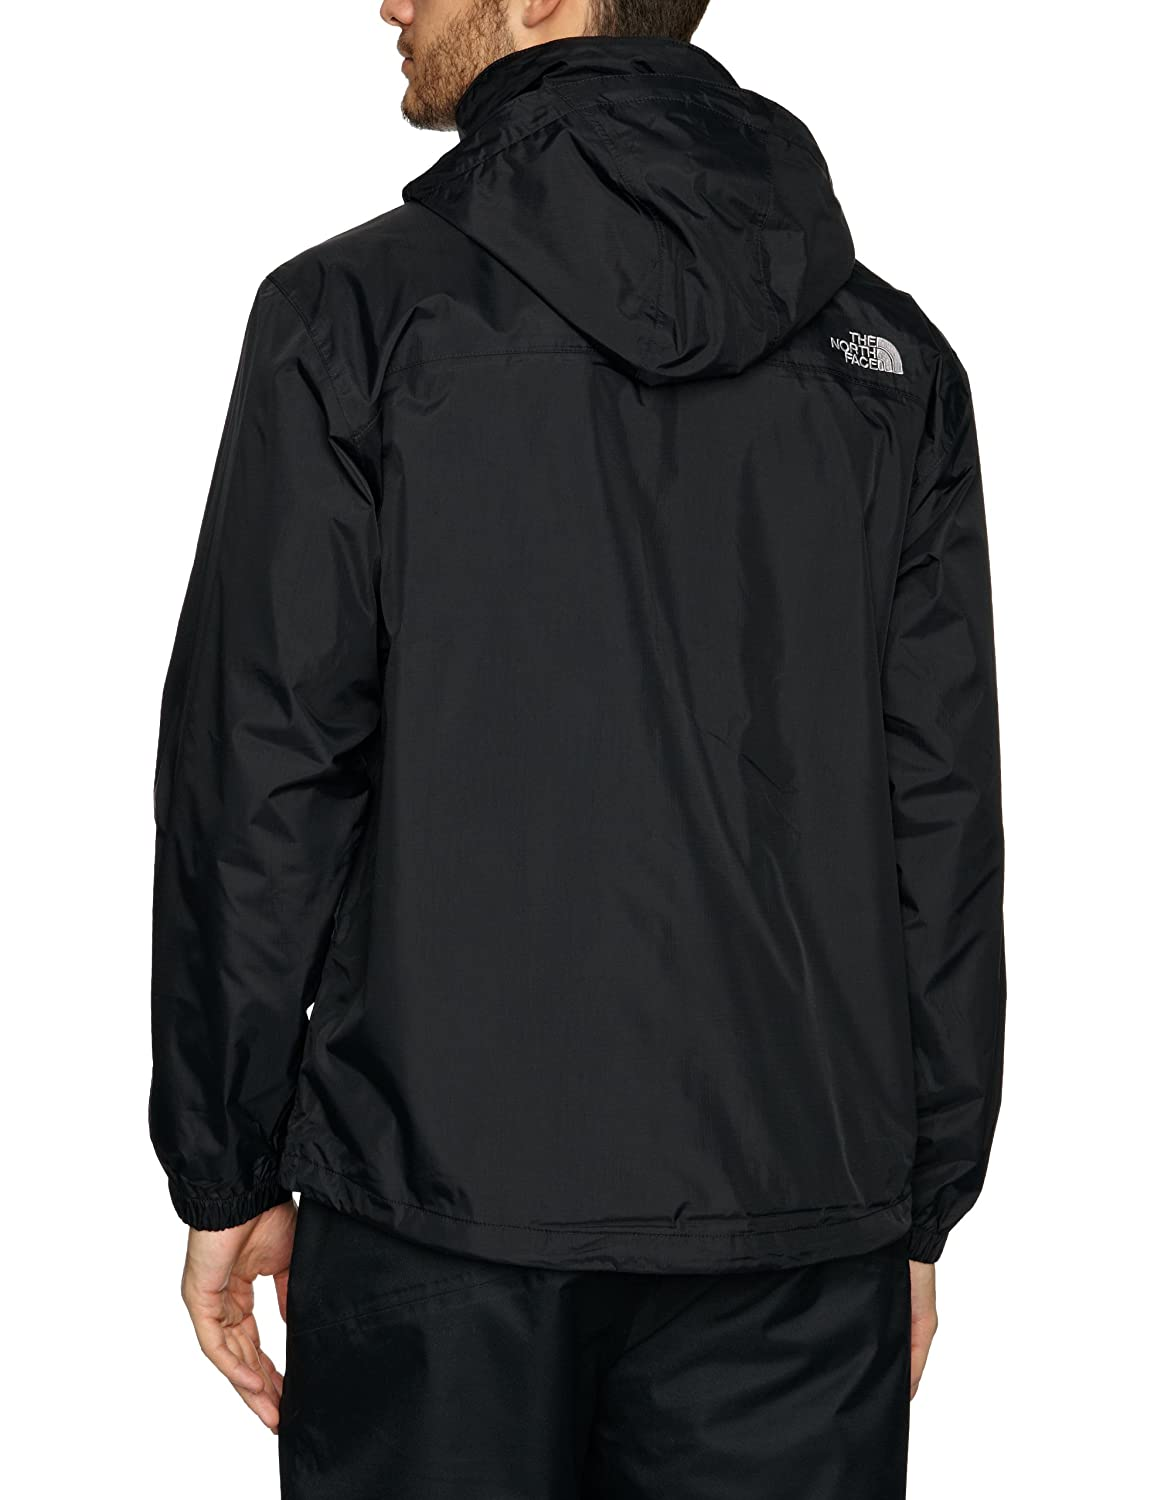 The North Face Men&39s Resolve Jacket: Amazon.co.uk: Sports &amp Outdoors